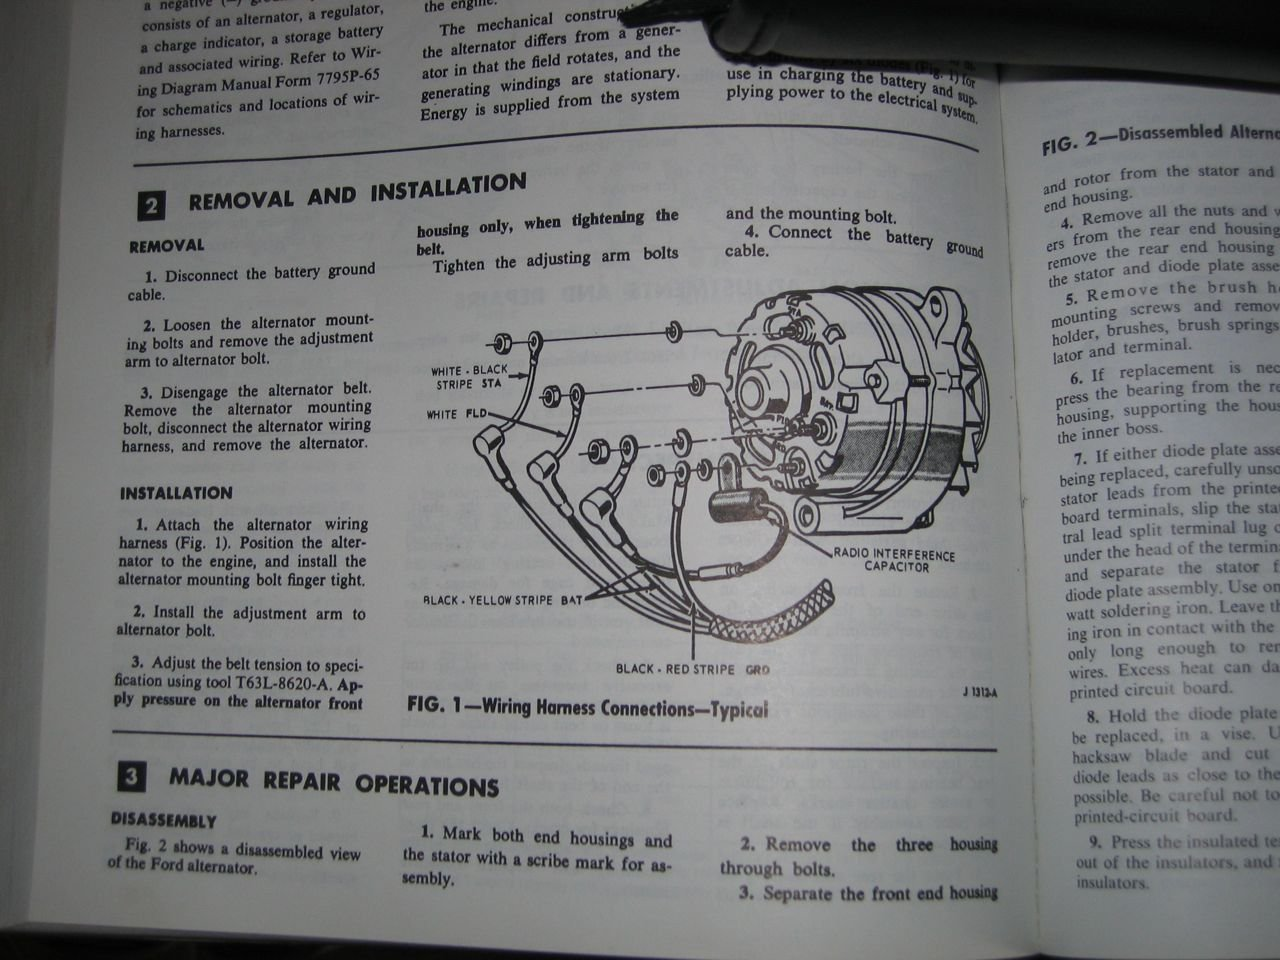 Mustang Wiring Schematic Charging Circuit on 1971 mustang wiring schematic, 2001 mustang wiring schematic, 1965 mustang steering schematic, 1964 mustang wiring schematic, 2005 mustang wiring schematic, 1967 mustang wiring schematic, 1968 mustang wiring schematic, 1957 chevrolet truck wiring schematic, 1967 gto wiring schematic, 2000 mustang wiring schematic, ford wiring schematic, 2006 mustang wiring schematic, 1967 camaro wiring schematic, 1966 mustang wiring schematic, 1970 mustang wiring schematic, 2008 mustang wiring schematic, 66 mustang wiring schematic, 65 mustang wiring schematic, 1969 camaro wiring schematic, 2002 mustang wiring schematic,